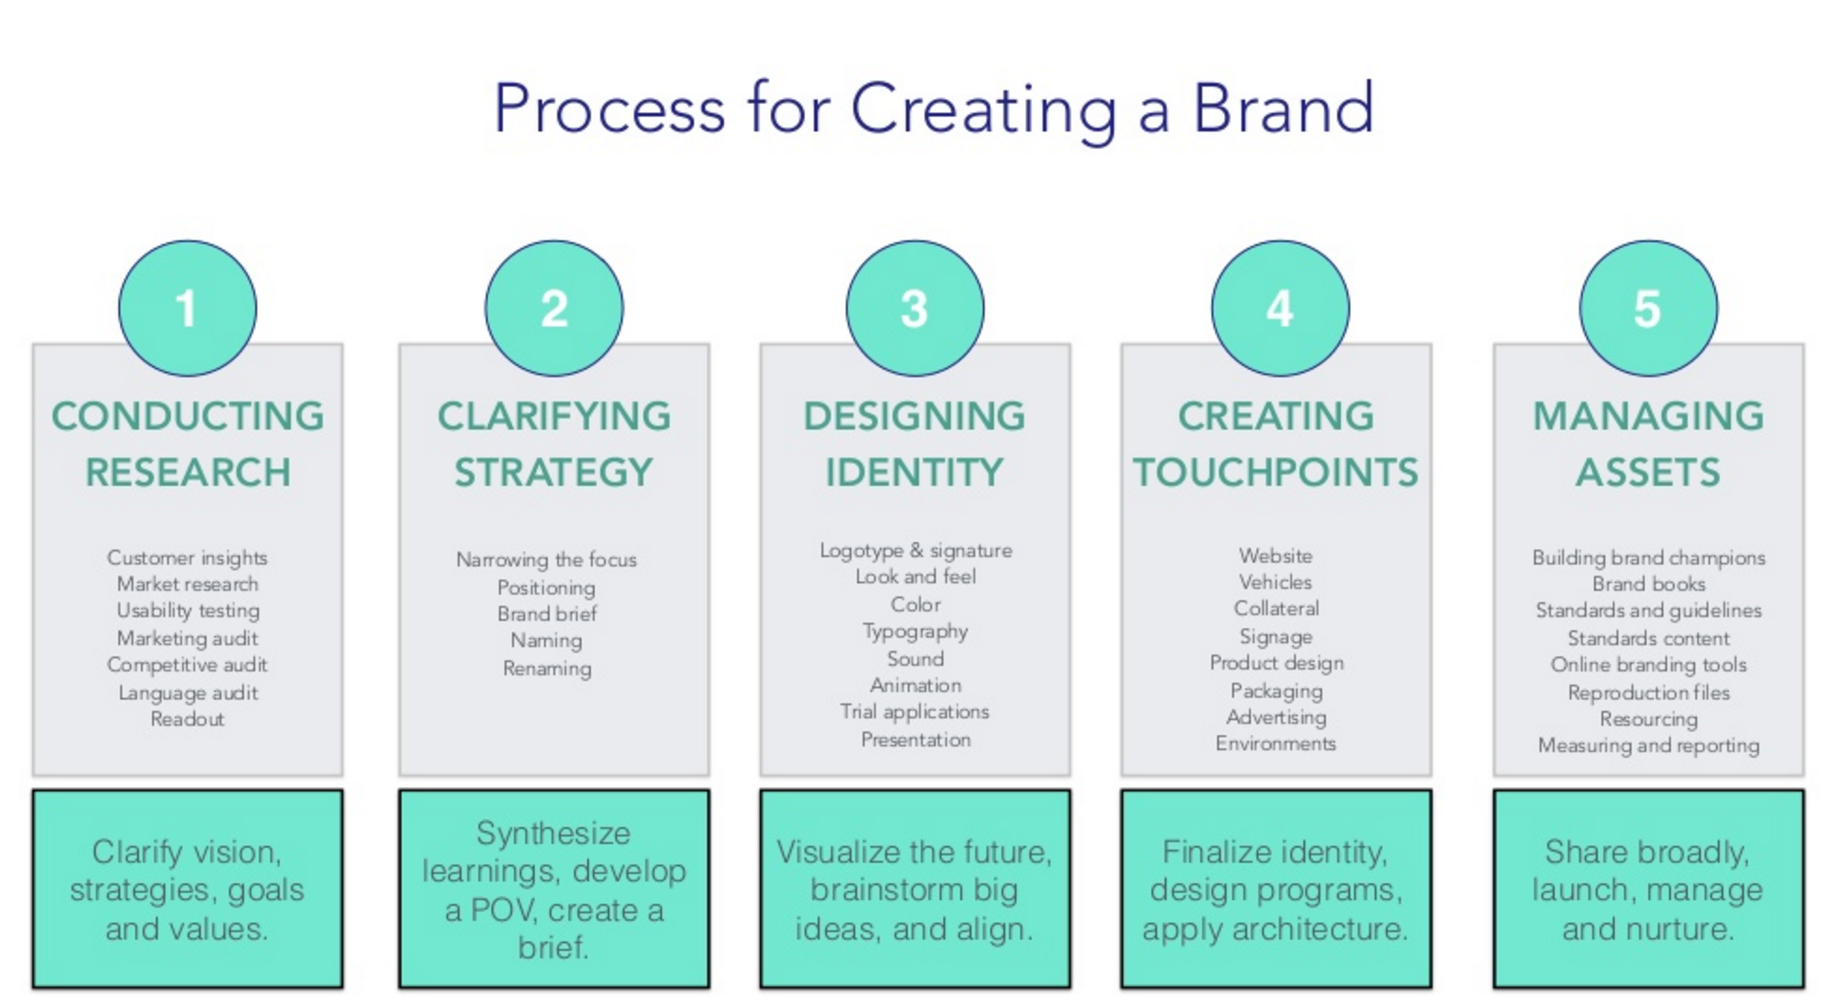 Process for creating a brand